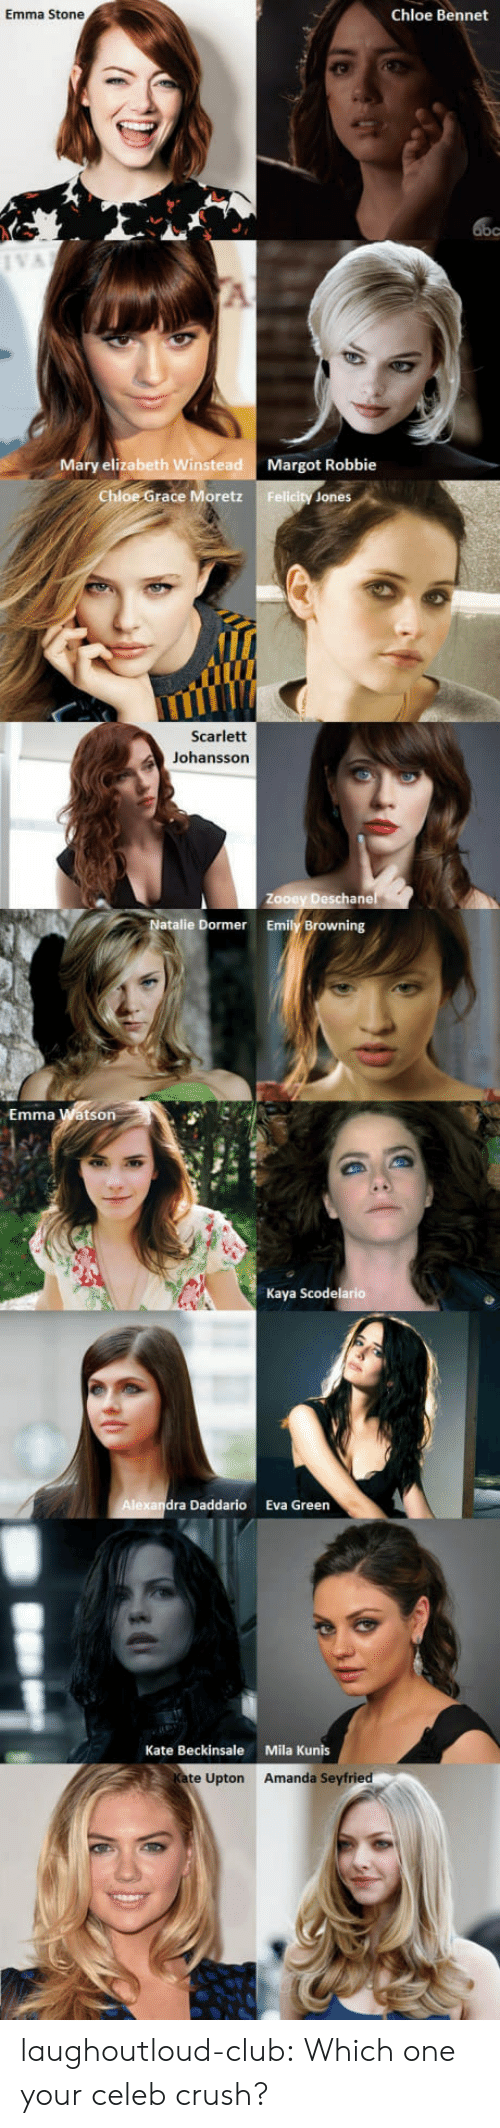 Emma Stone: Emma Stone  Chloe Bennet  IVA  Mary elizabeth Winstead  Margot Robbie  Chloe Grace Moretz Felicity Jones  IIT  Scarlett  Johansson  ane  atalie Dormer  Emily Browning  Emma Watson  Kaya Scodelario  dra Daddario  Eva Green  Kate Beckinsale  Mila Kunis  Kate Upton Amanda Seyfried laughoutloud-club:  Which one your celeb crush?